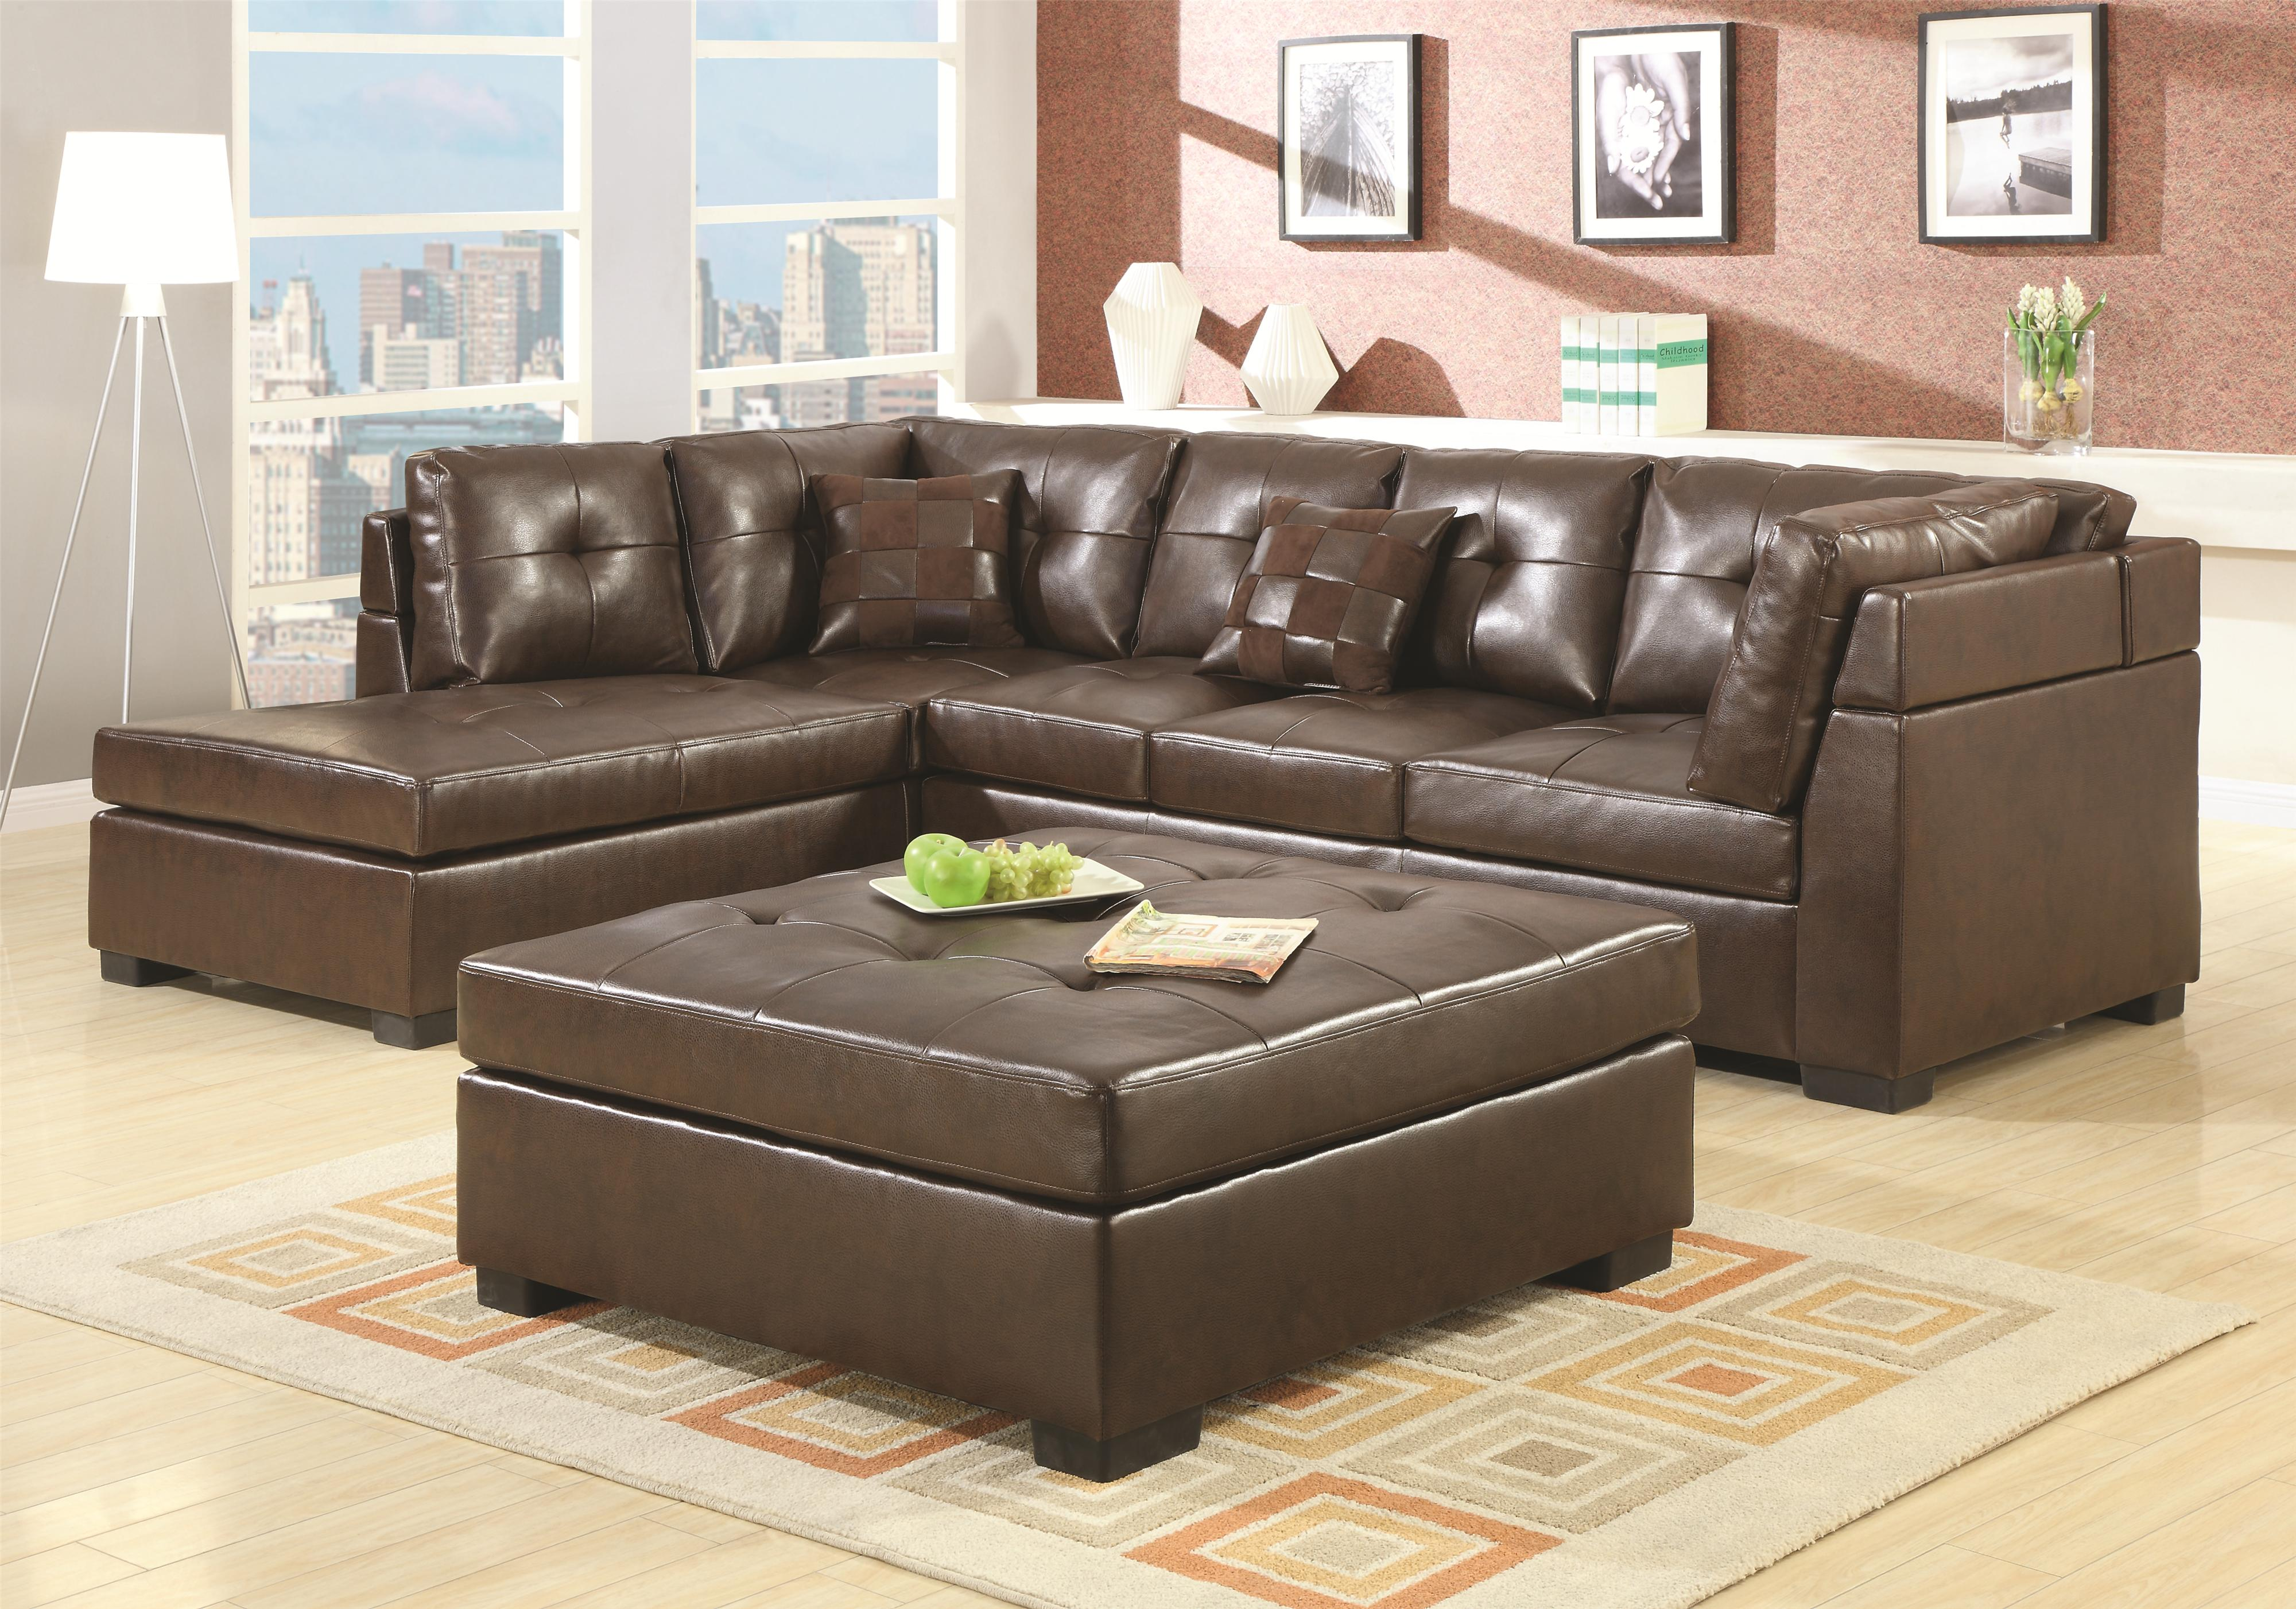 Darie Leather Sectional Sofa with Left-Side Chaise by Coaster at Dunk &  Bright Furniture